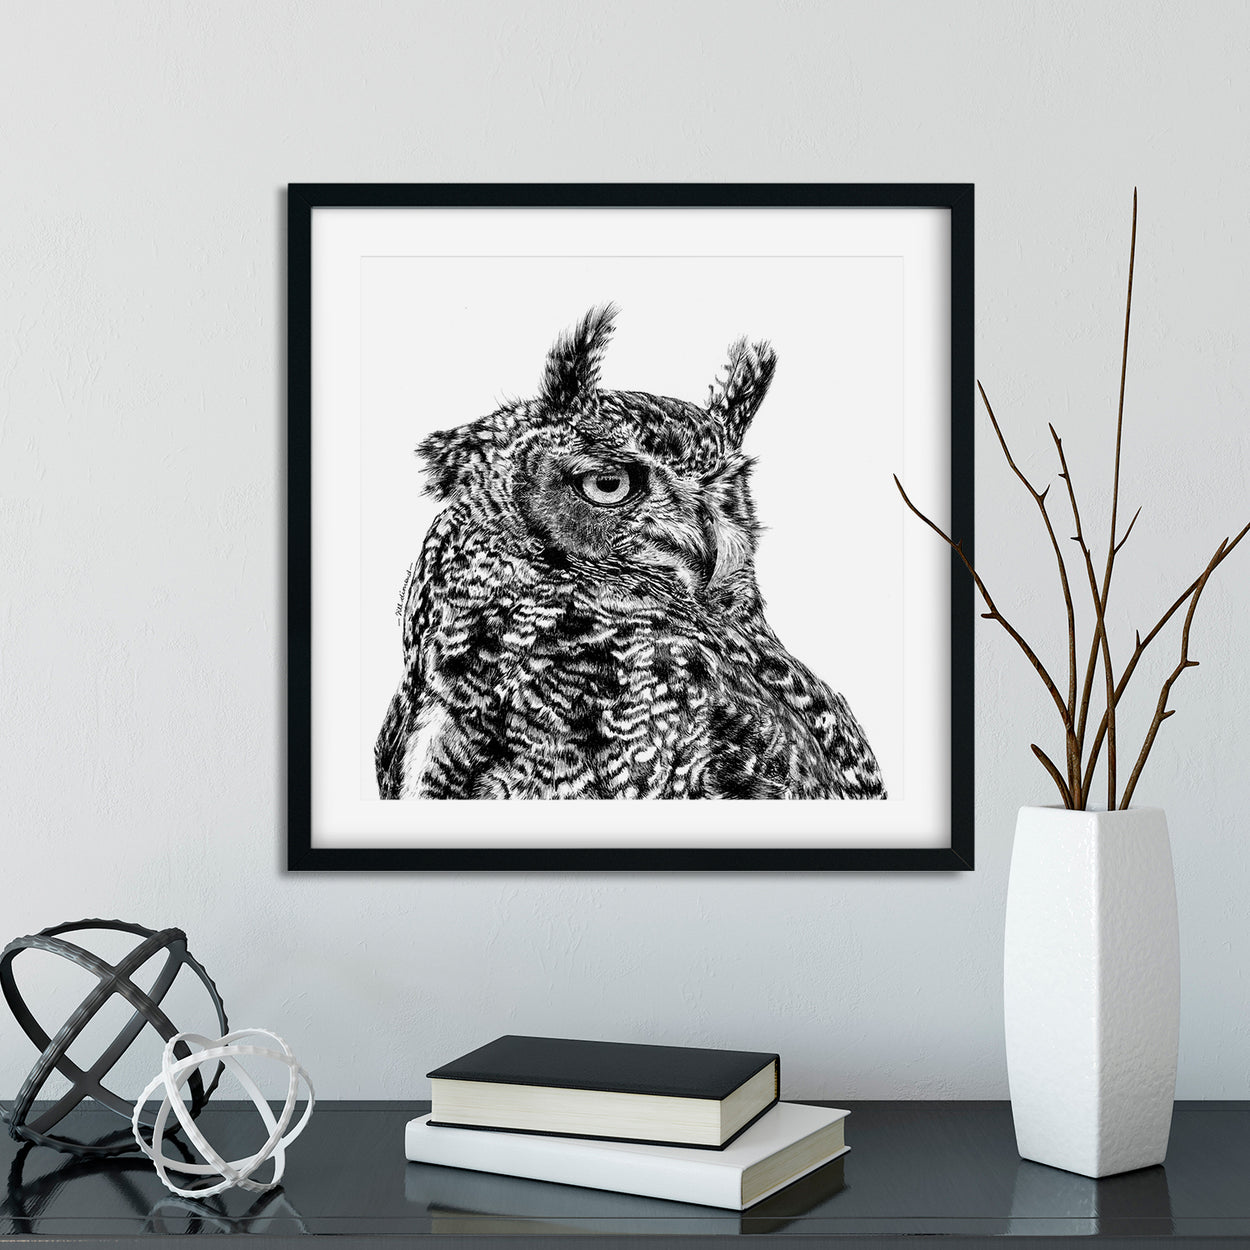 Eagle Owl Prints Square Framed - The Thriving Wild